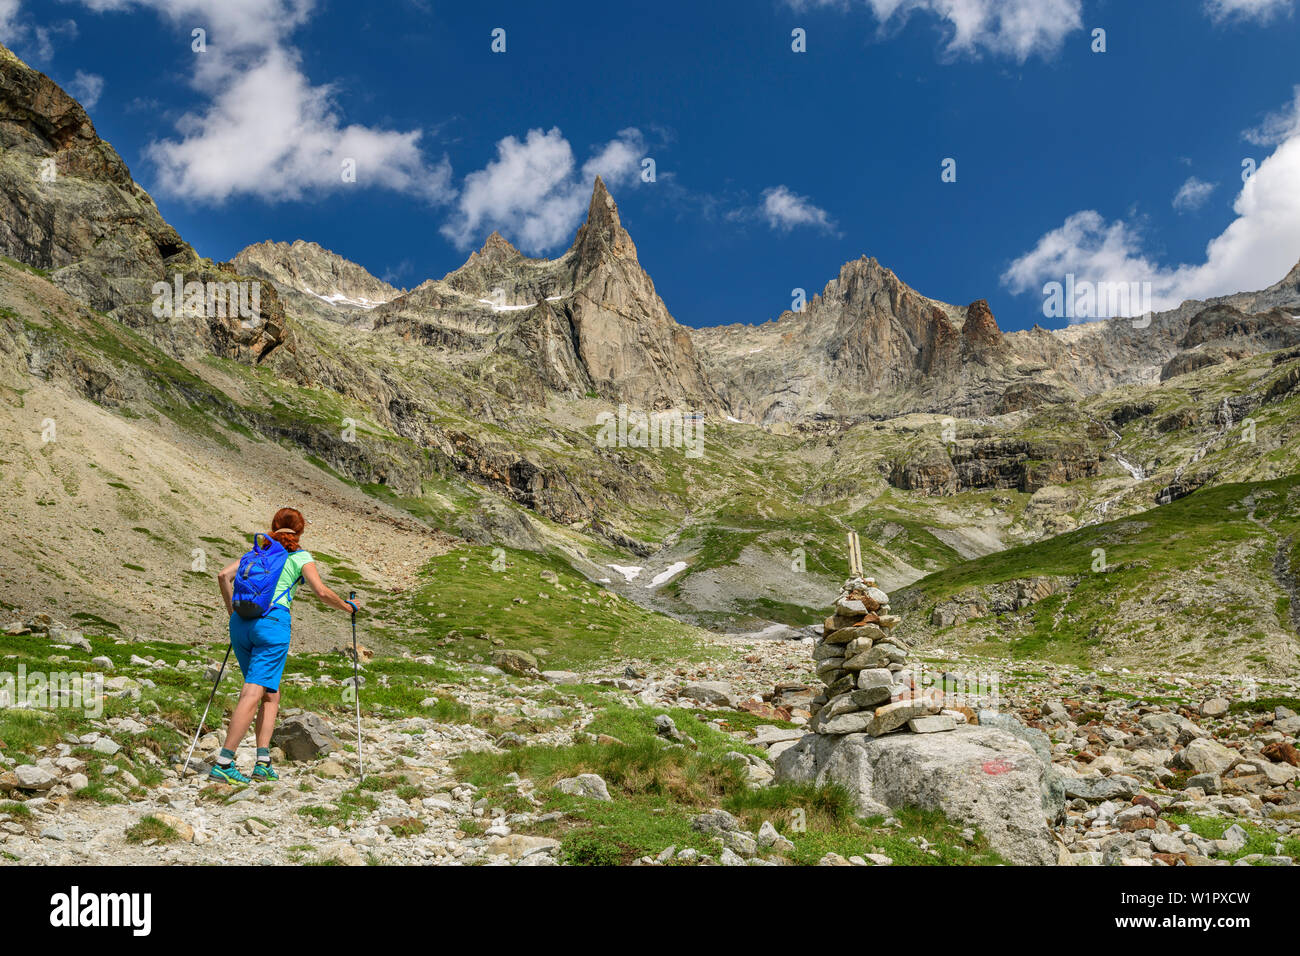 Woman while hiking rises for the refuge du sore Iller, Aiguille Dibona Orientale and Aiguille du sore Iller in the background, Ecrins, Ecrins National - Stock Image